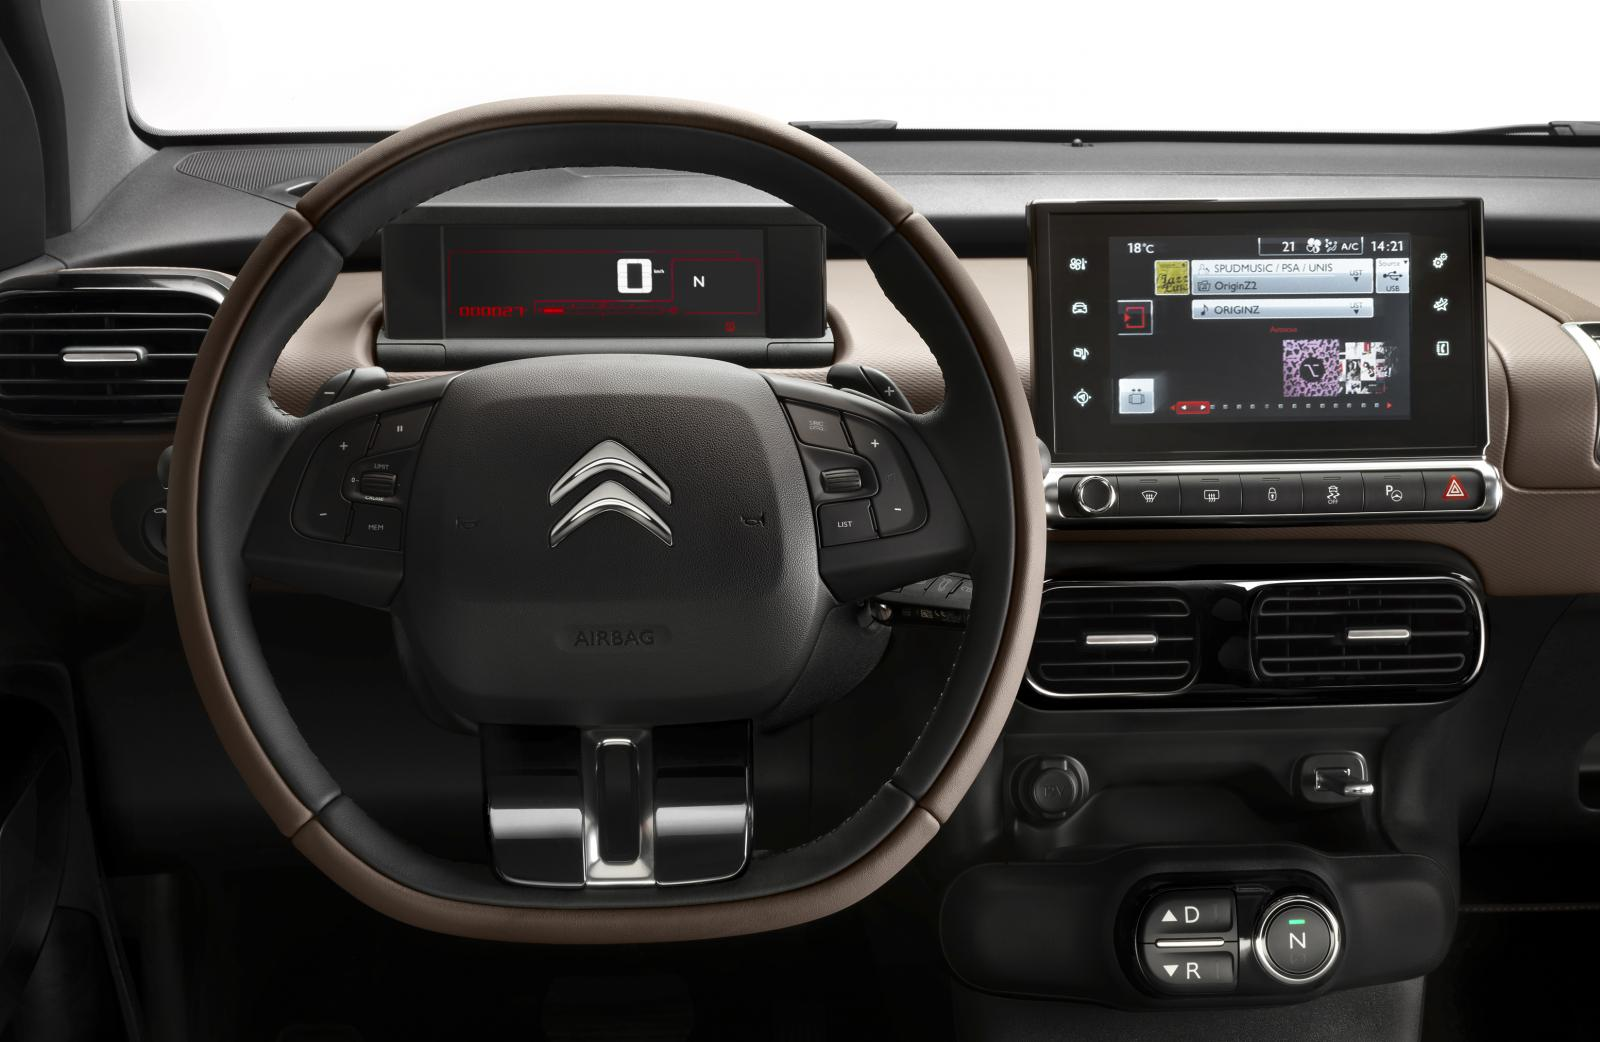 C4 Cactus Shine edition 2014 steering wheel